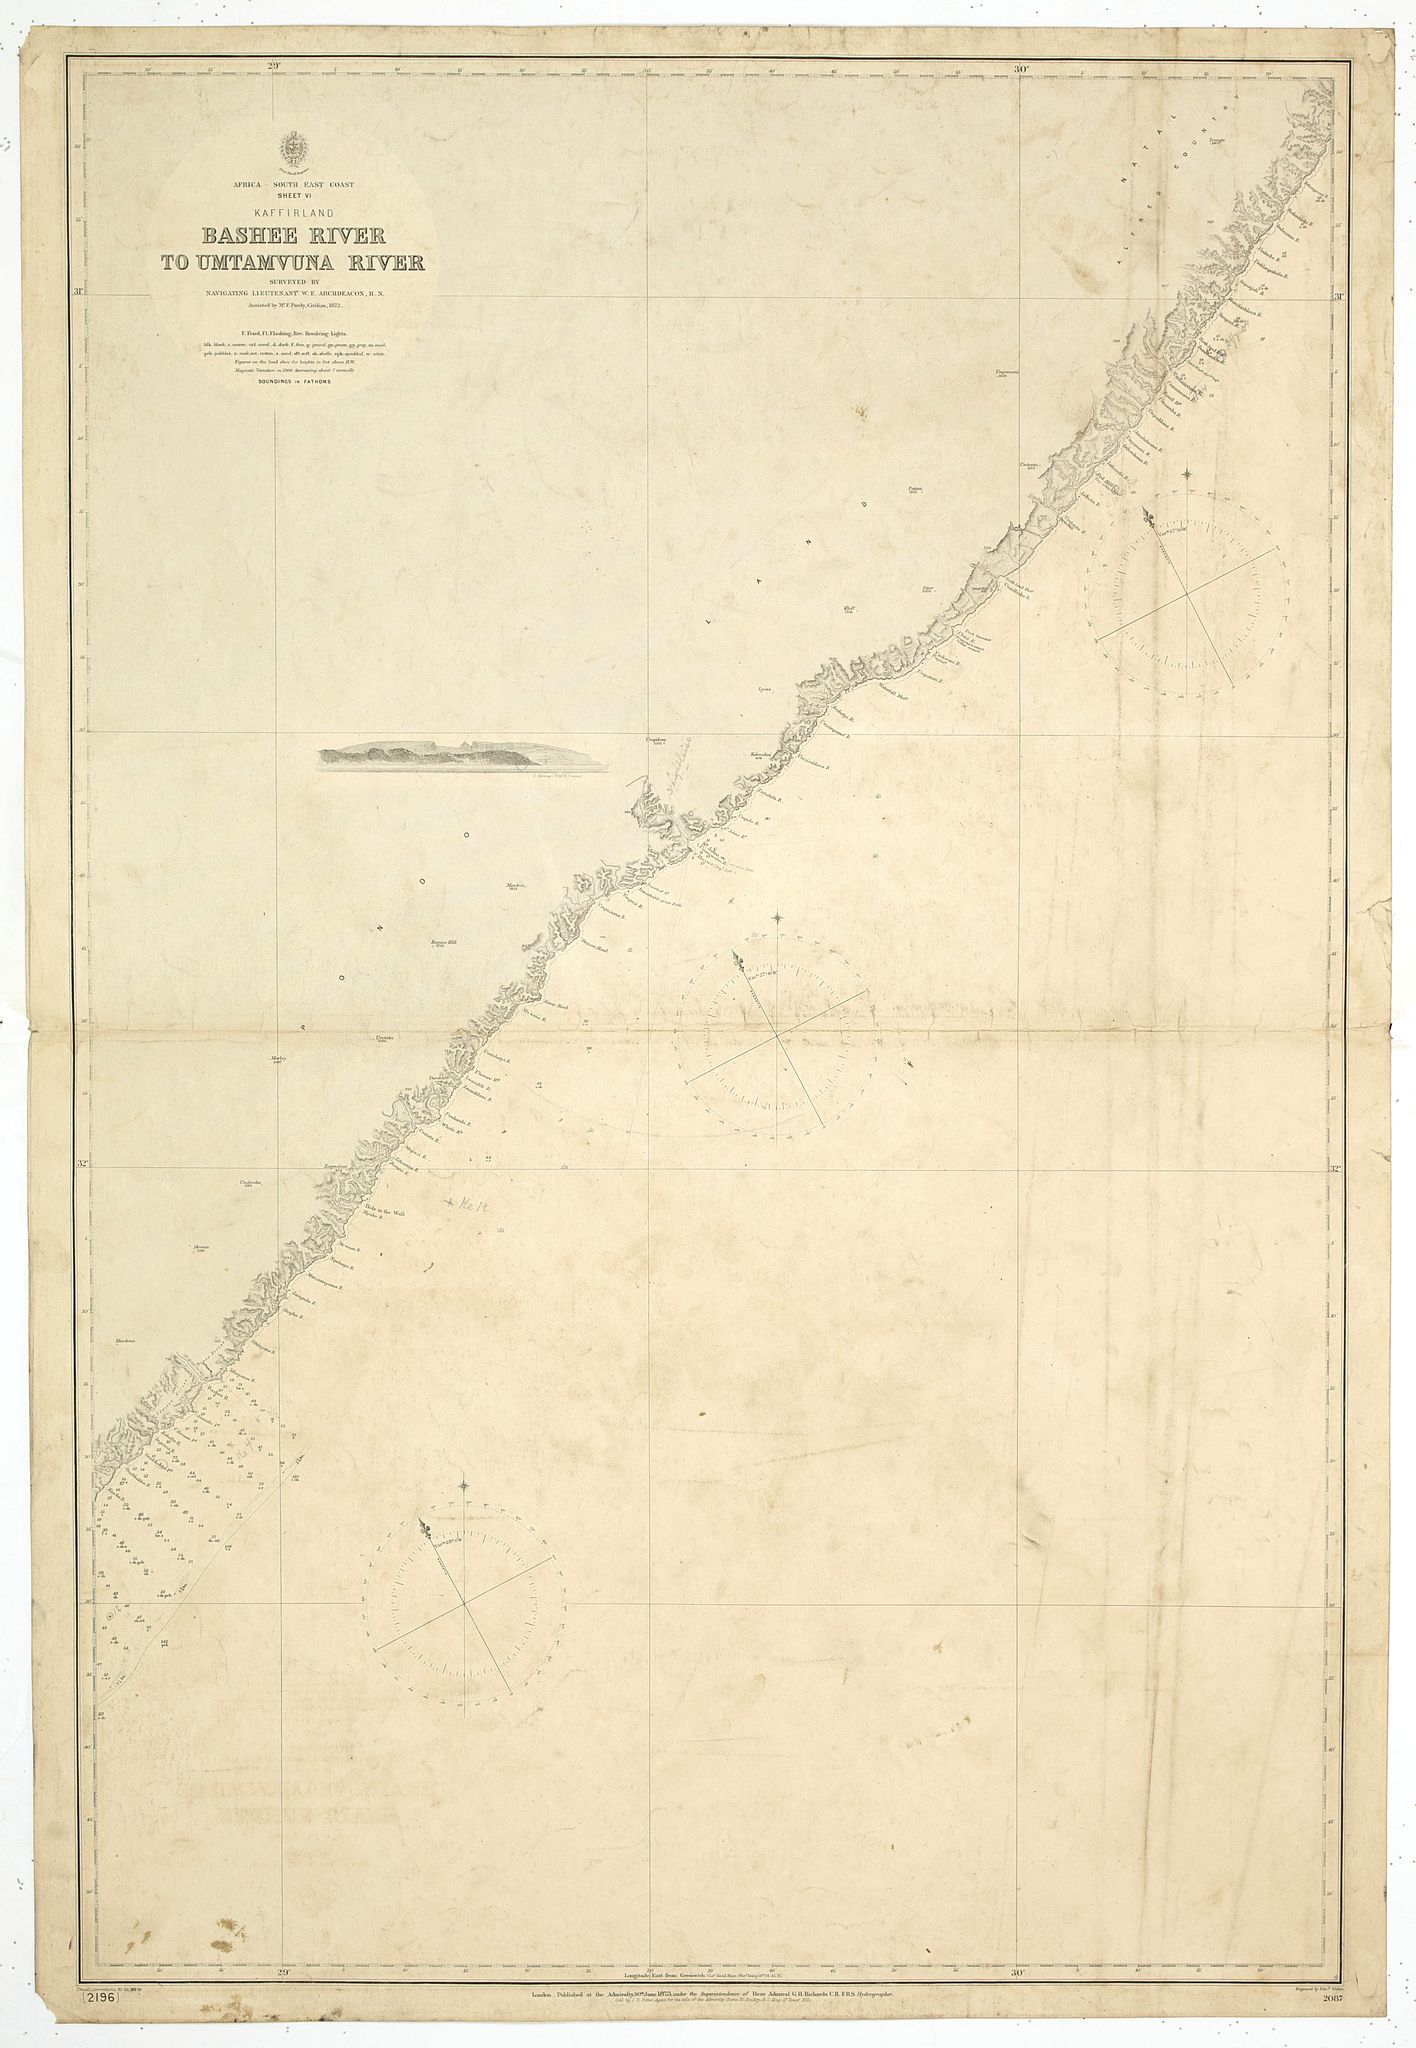 BRITISH ADMIRALTY CHART. - Africa - South East Coast Sheet VI Kaffirland Banshee River to Umtamuuna River Surveyed by Navigating Lieutenant W. E. Archdeacon. R.N. Assisted by Mr F. Purdy, Civilian 1872…